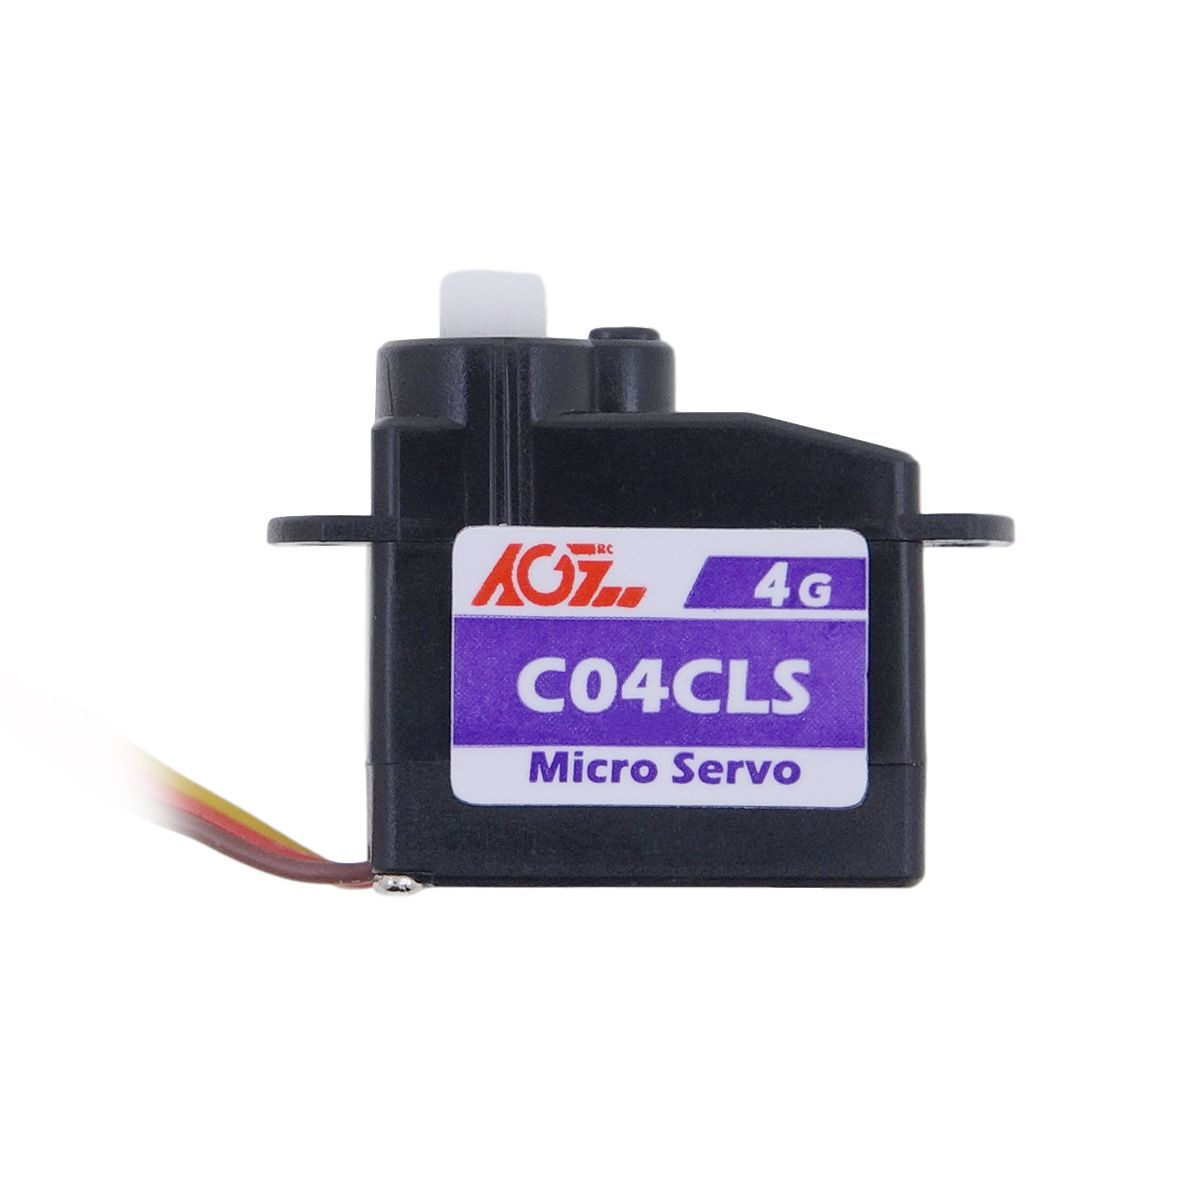 C04CLS 4.3g 0.07s High Speed Digital Mini Micro Coreless Servo for Small Park Flyers